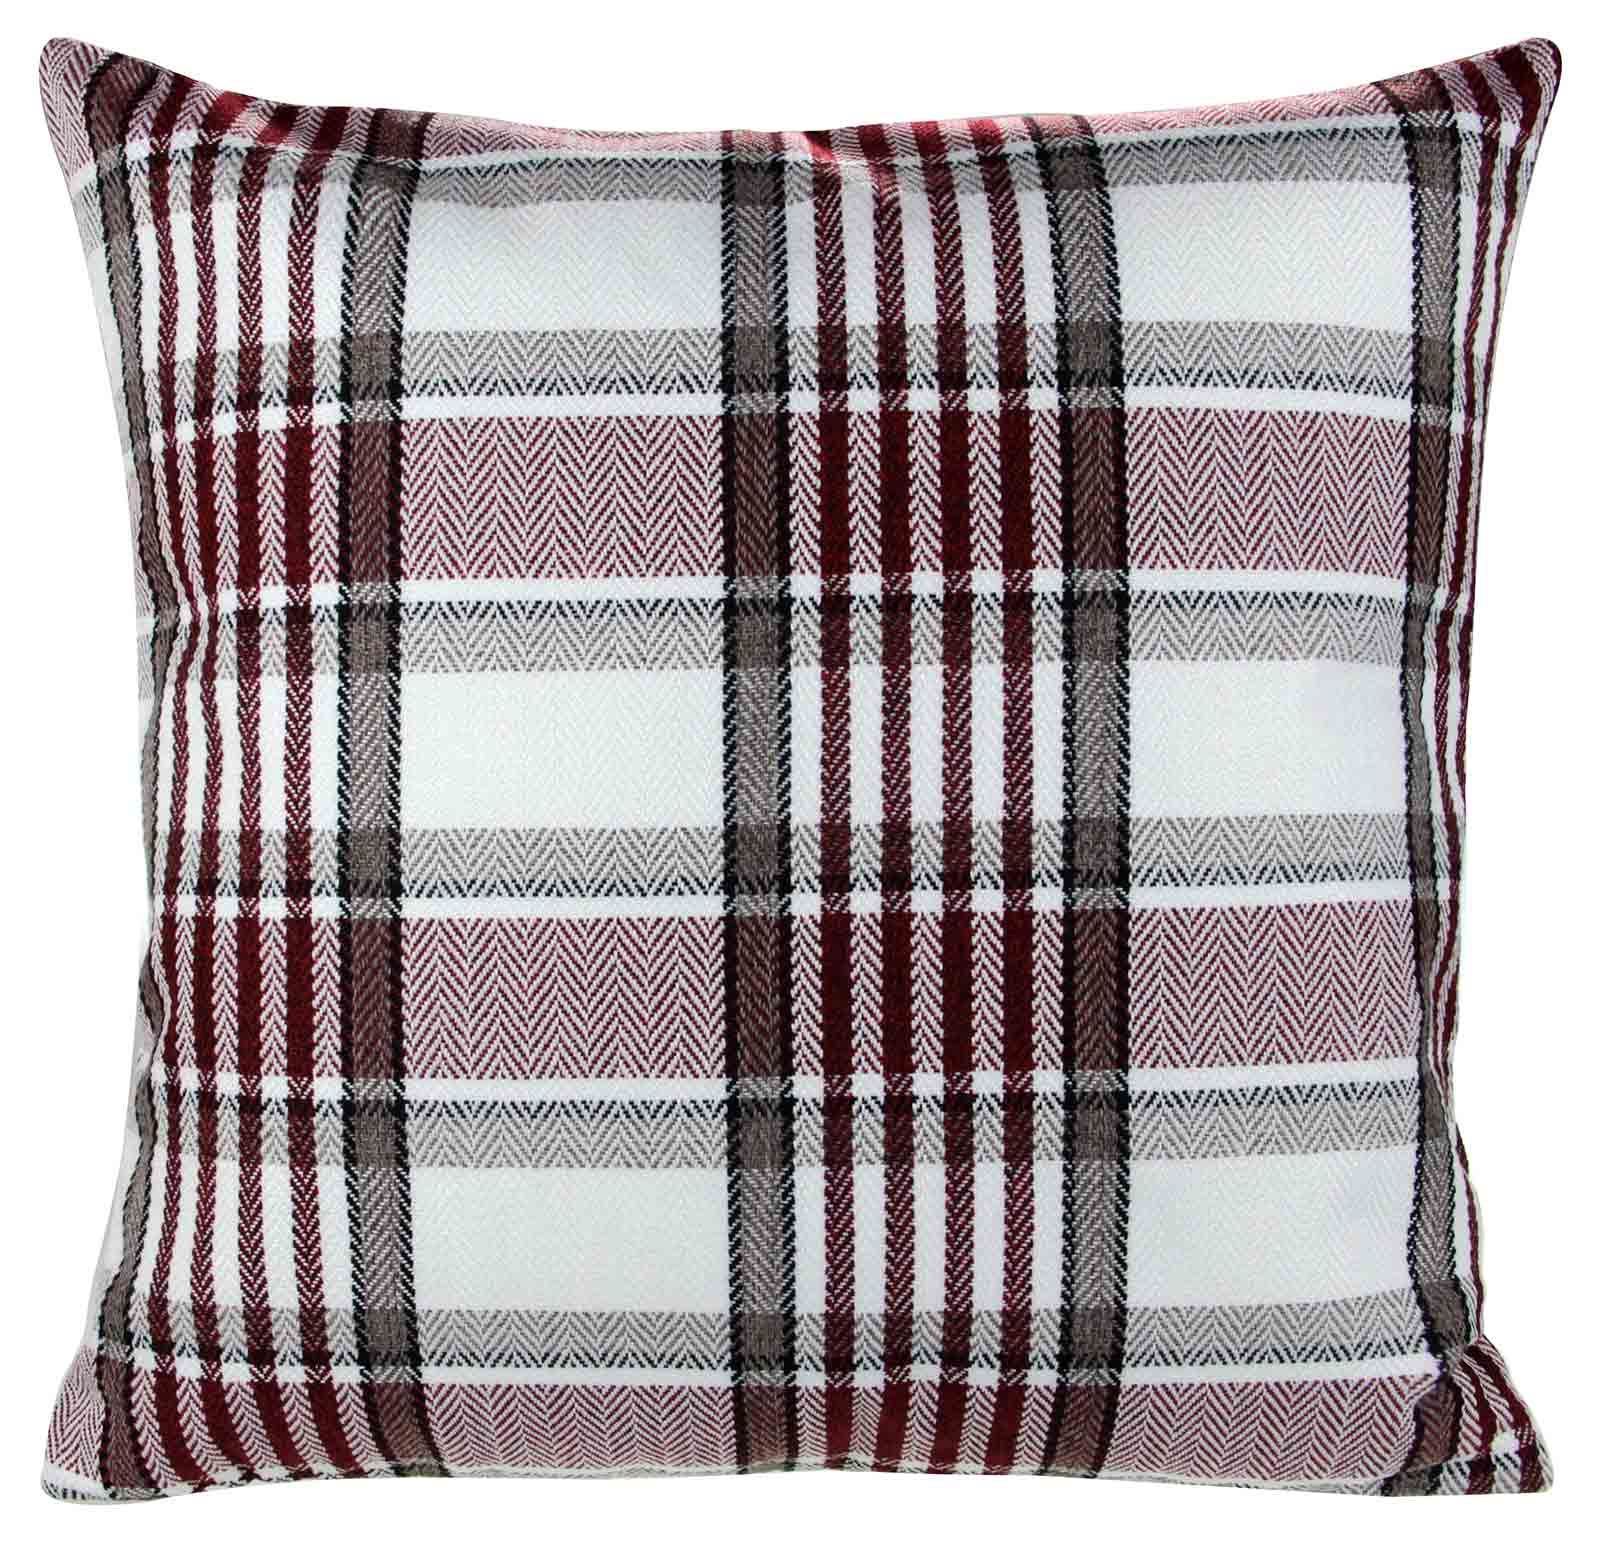 Find great deals on eBay for check throw pillows. Shop with confidence.